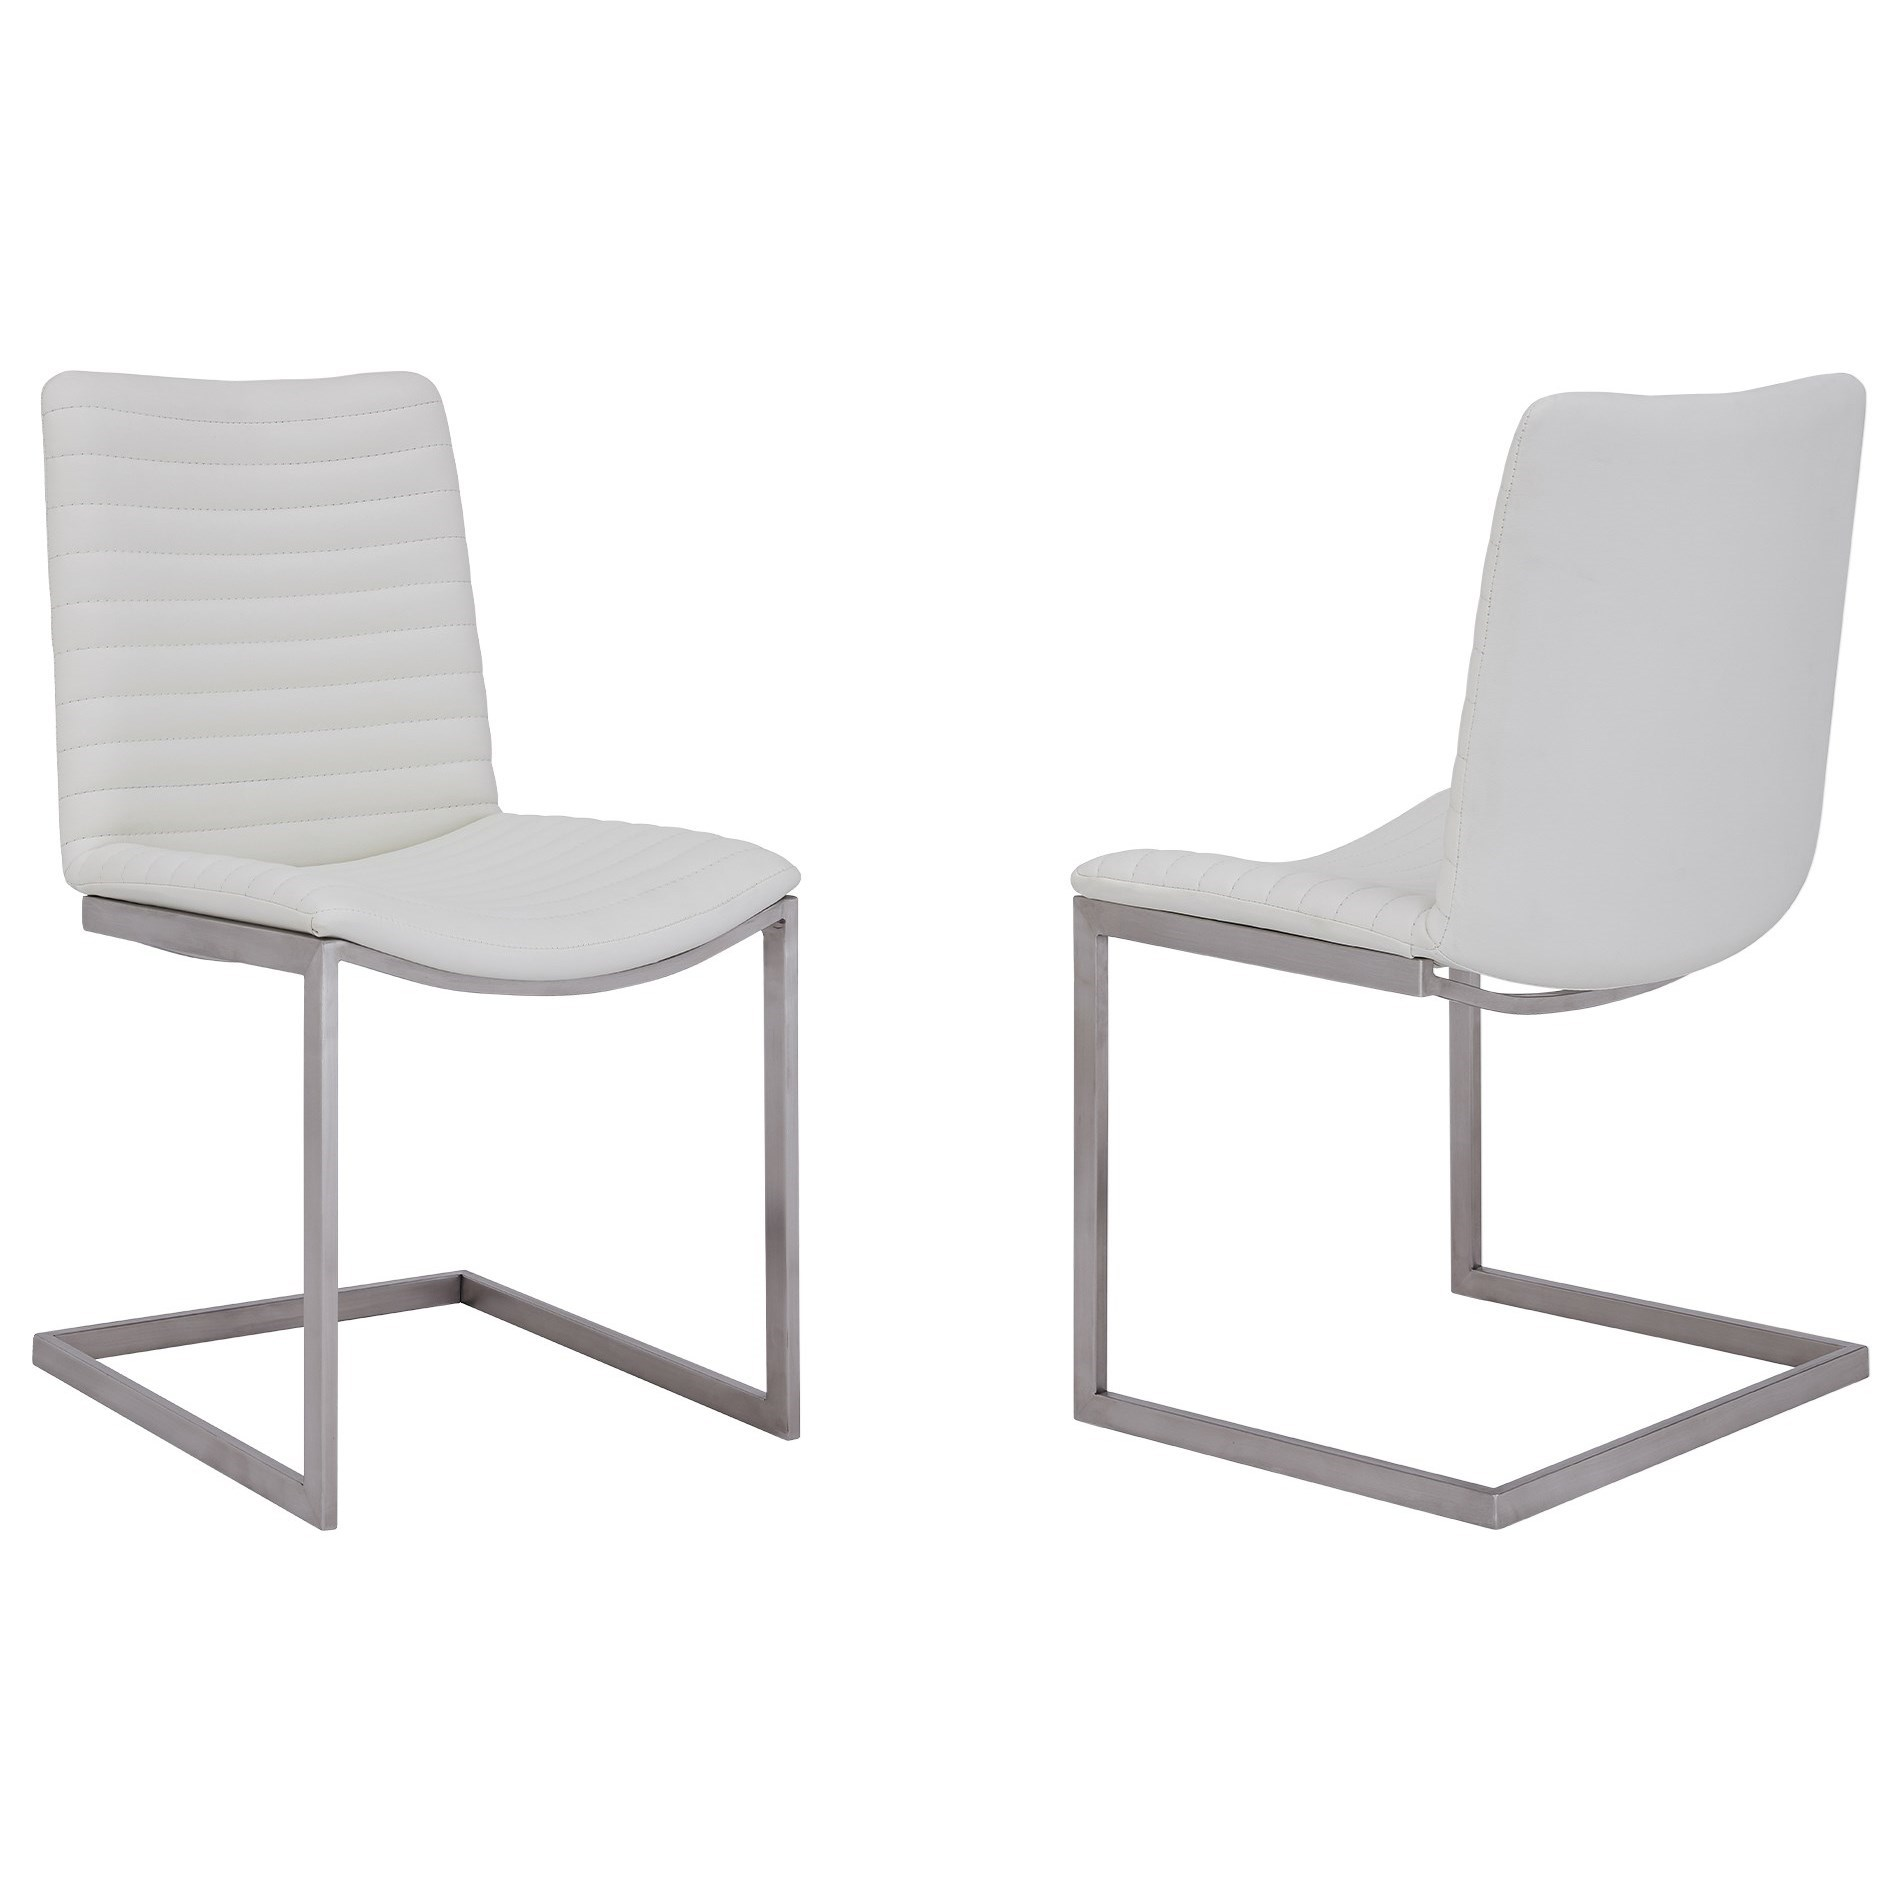 April Dining Chair - Set of 2 by Armen Living at Fisher Home Furnishings